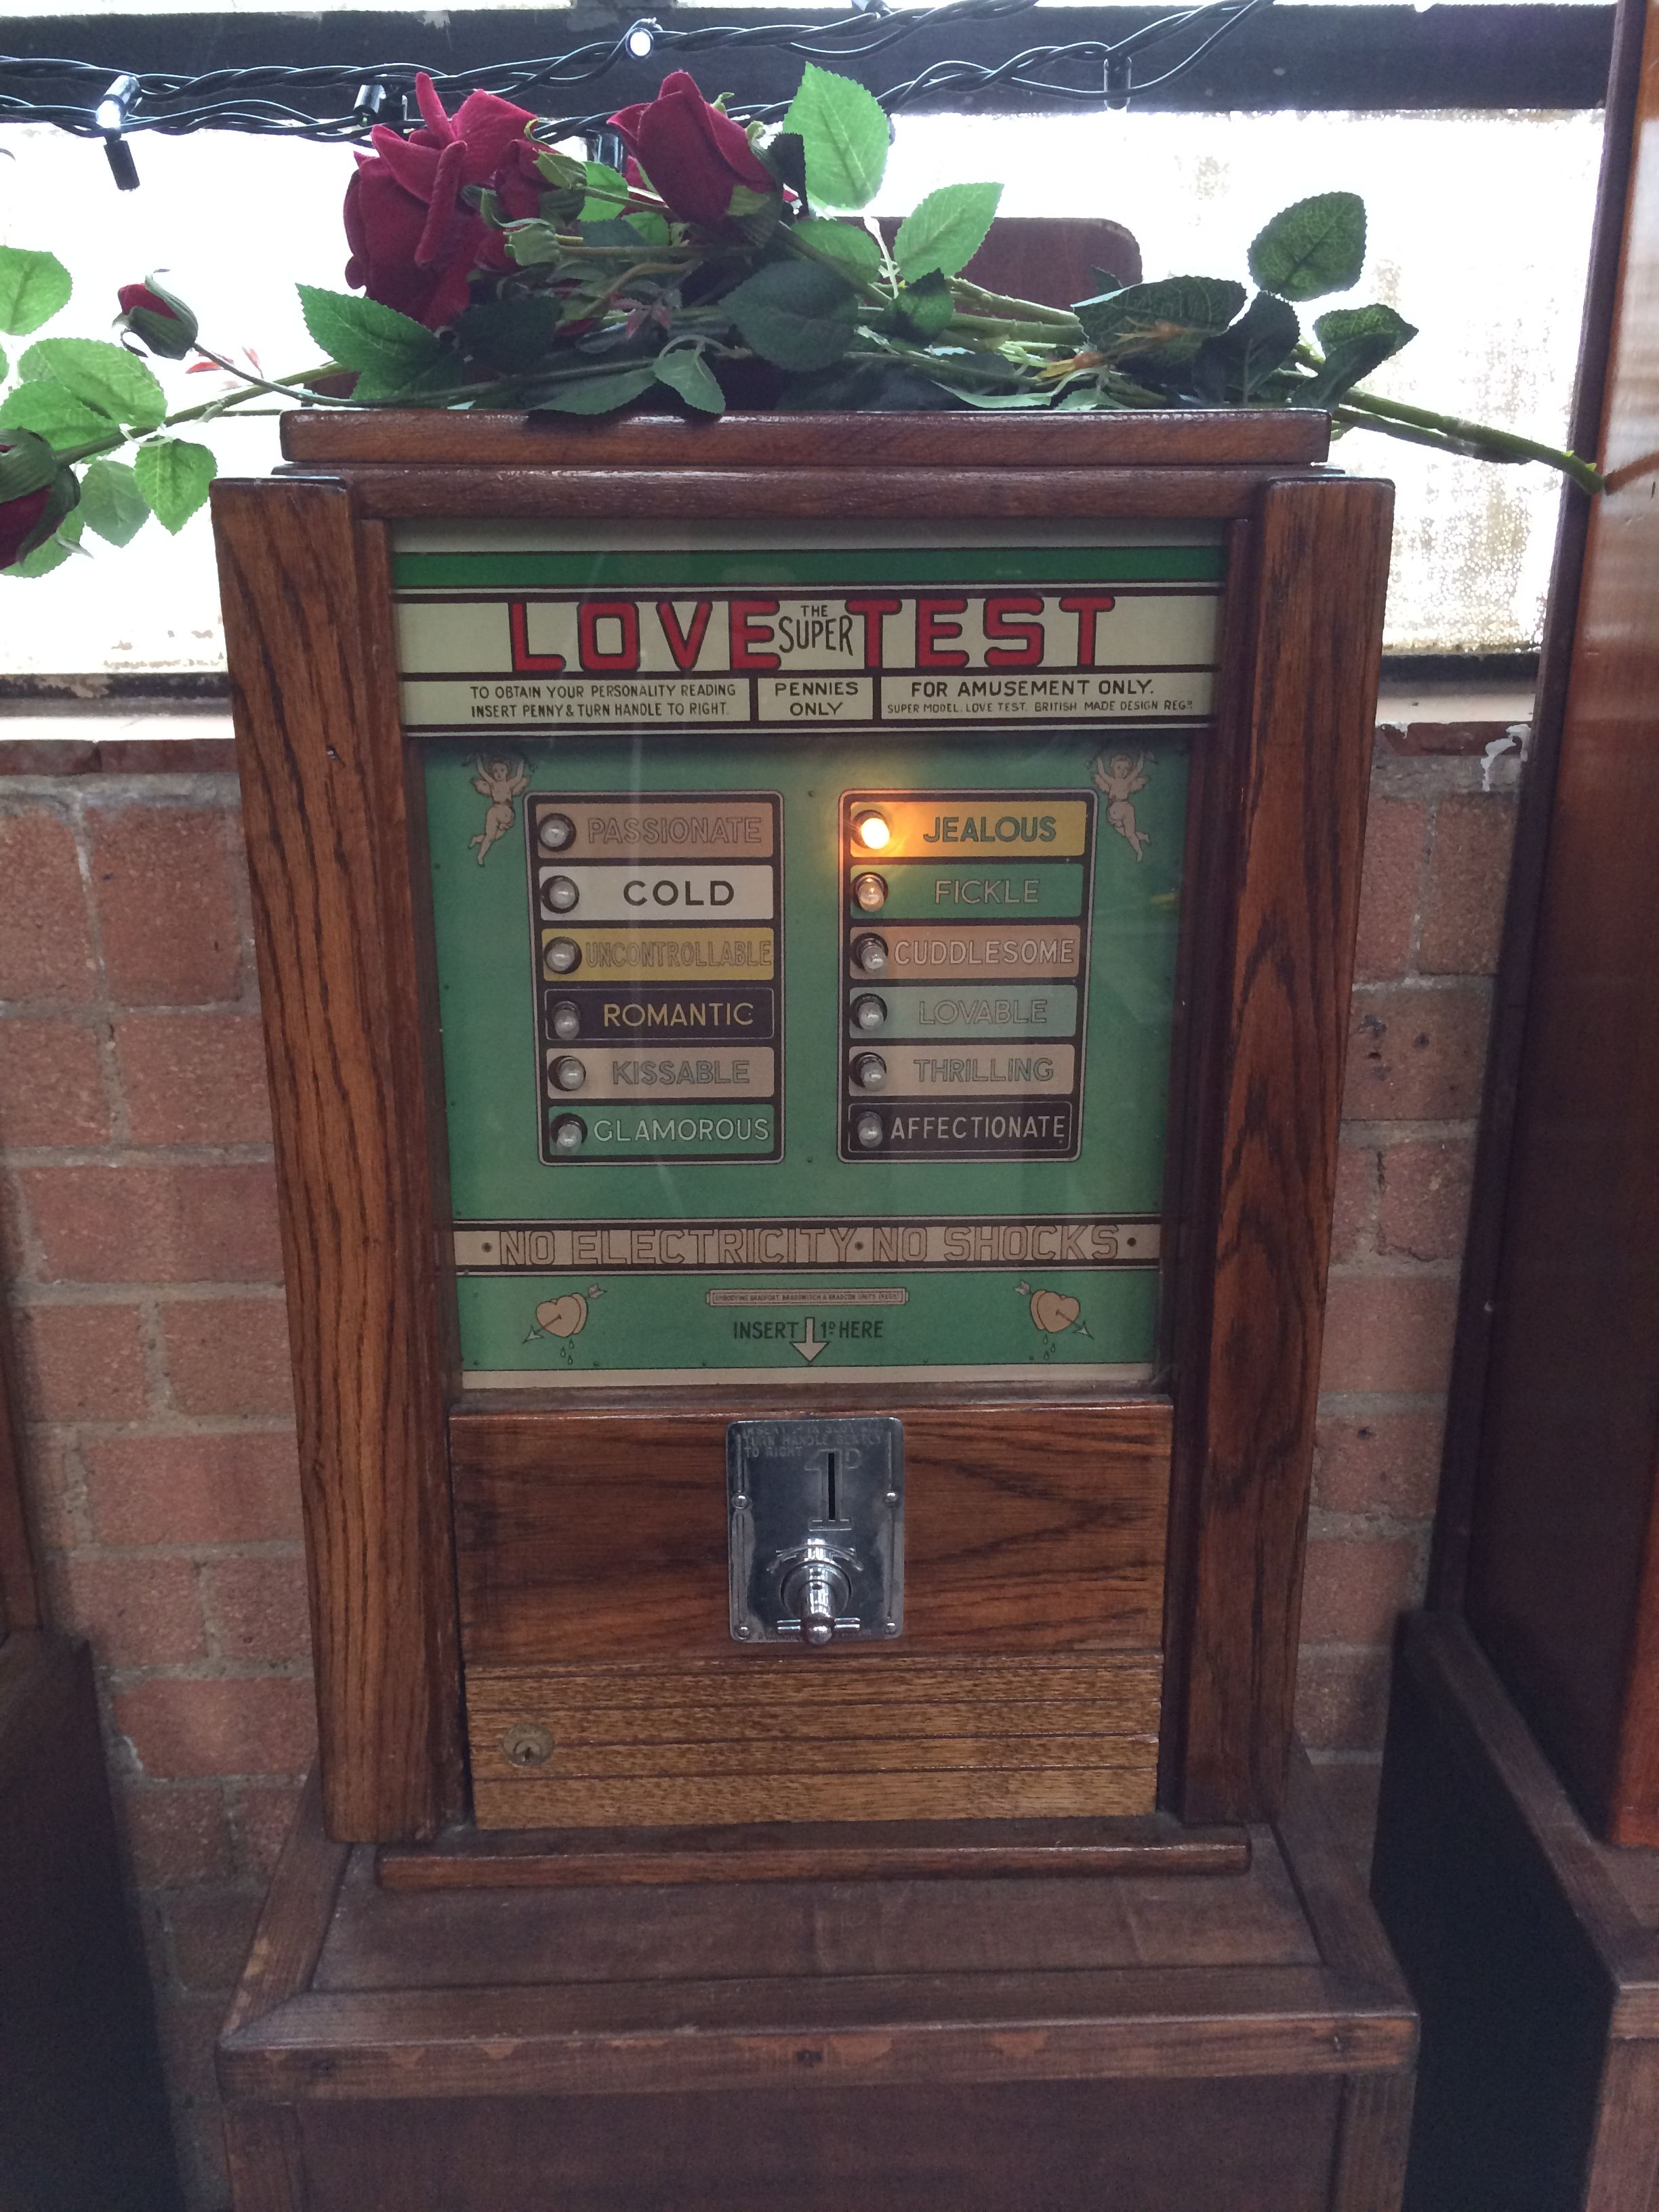 Vintage Arcade Games I Played This One Maybe Back In The